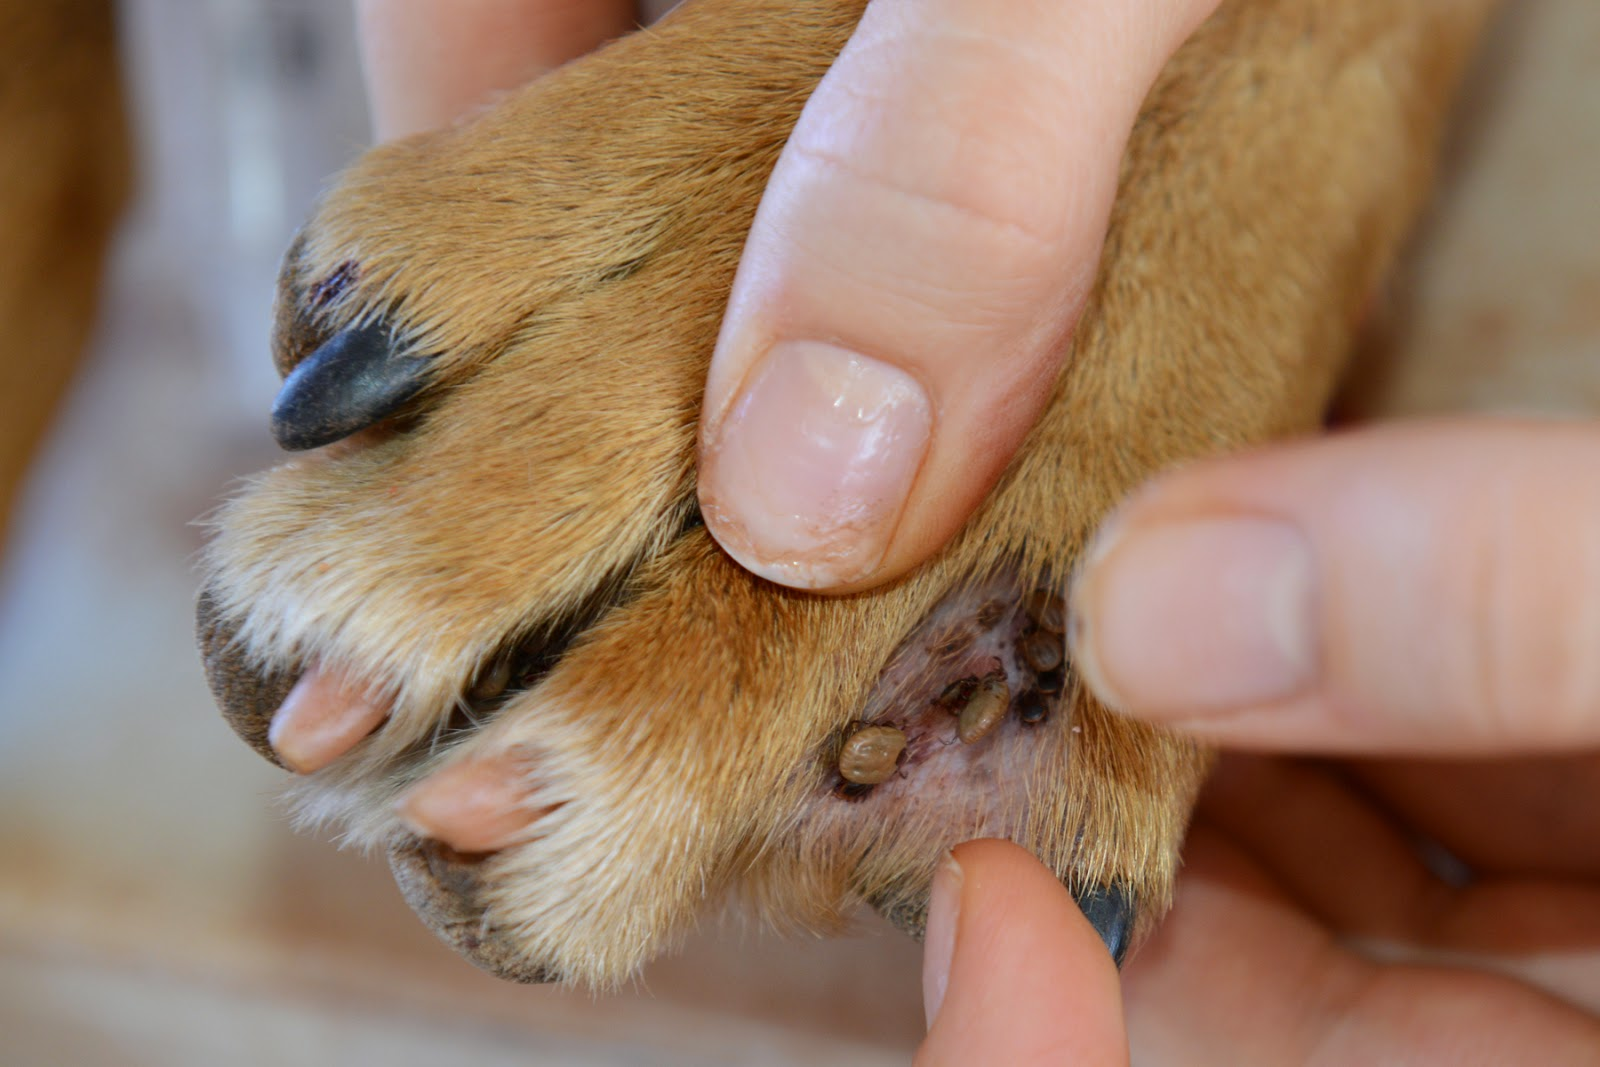 Ticks Between Toes These Can Be Tricky For Dogs To Remove Themselves